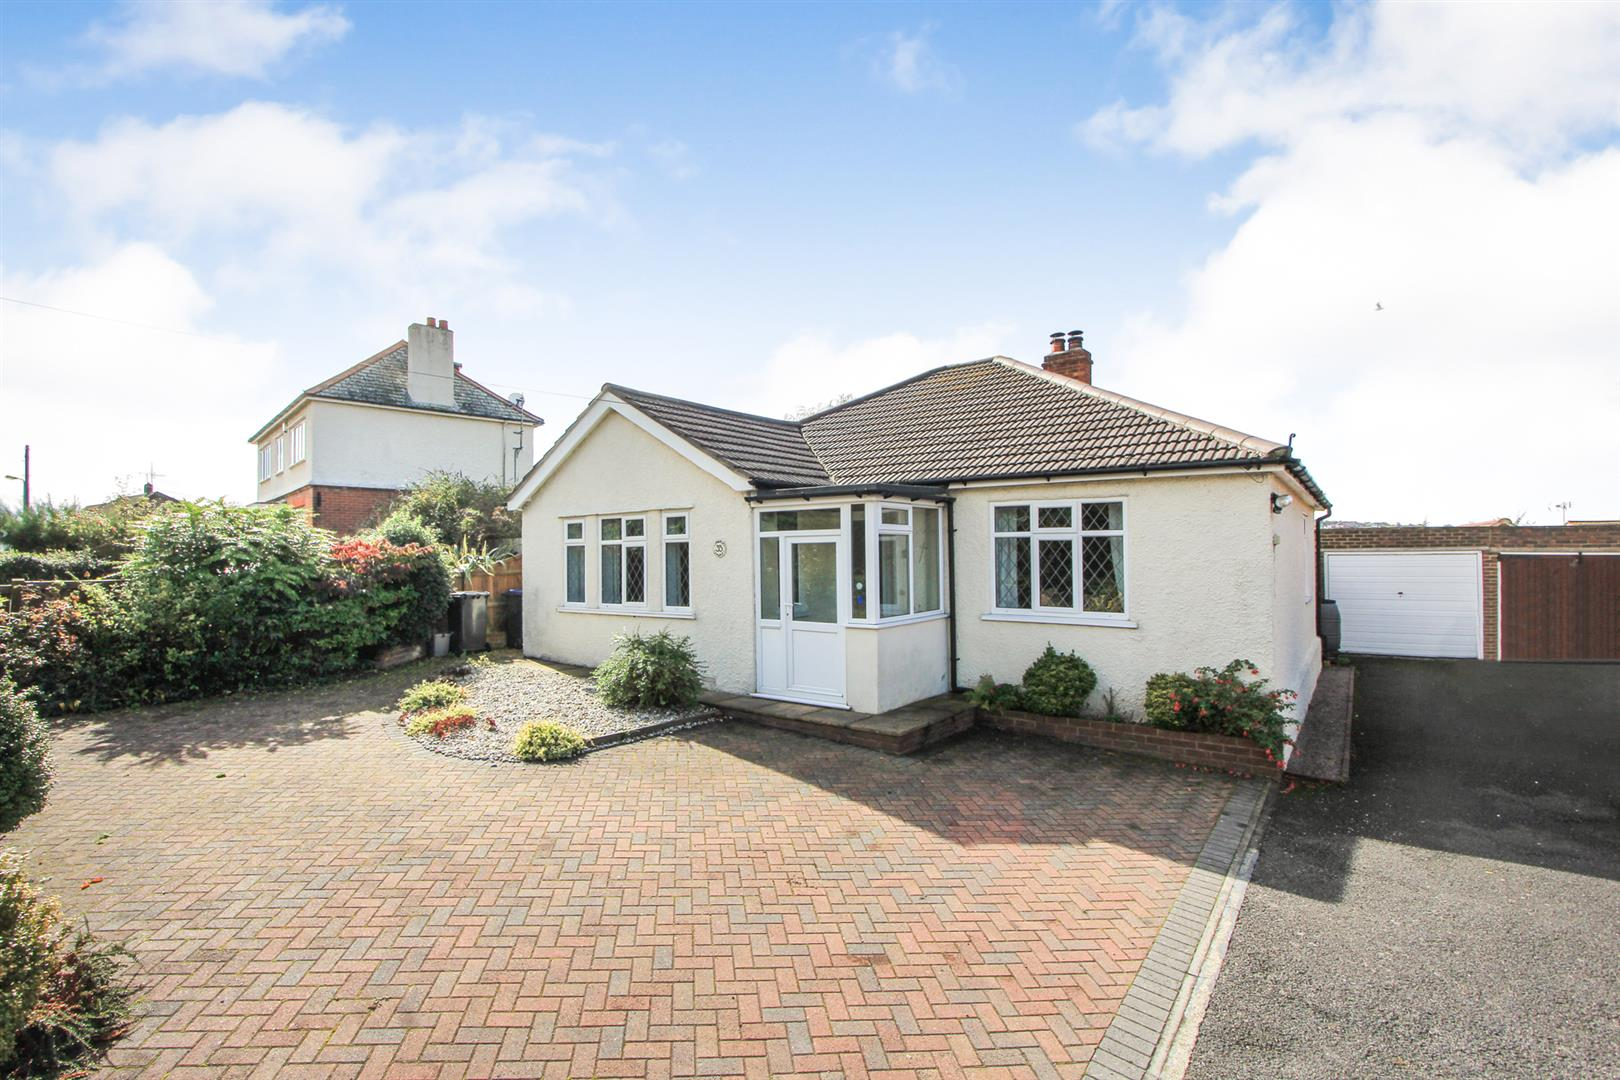 2 Bedrooms Detached Bungalow for sale in Millstrood Road, Whitstable